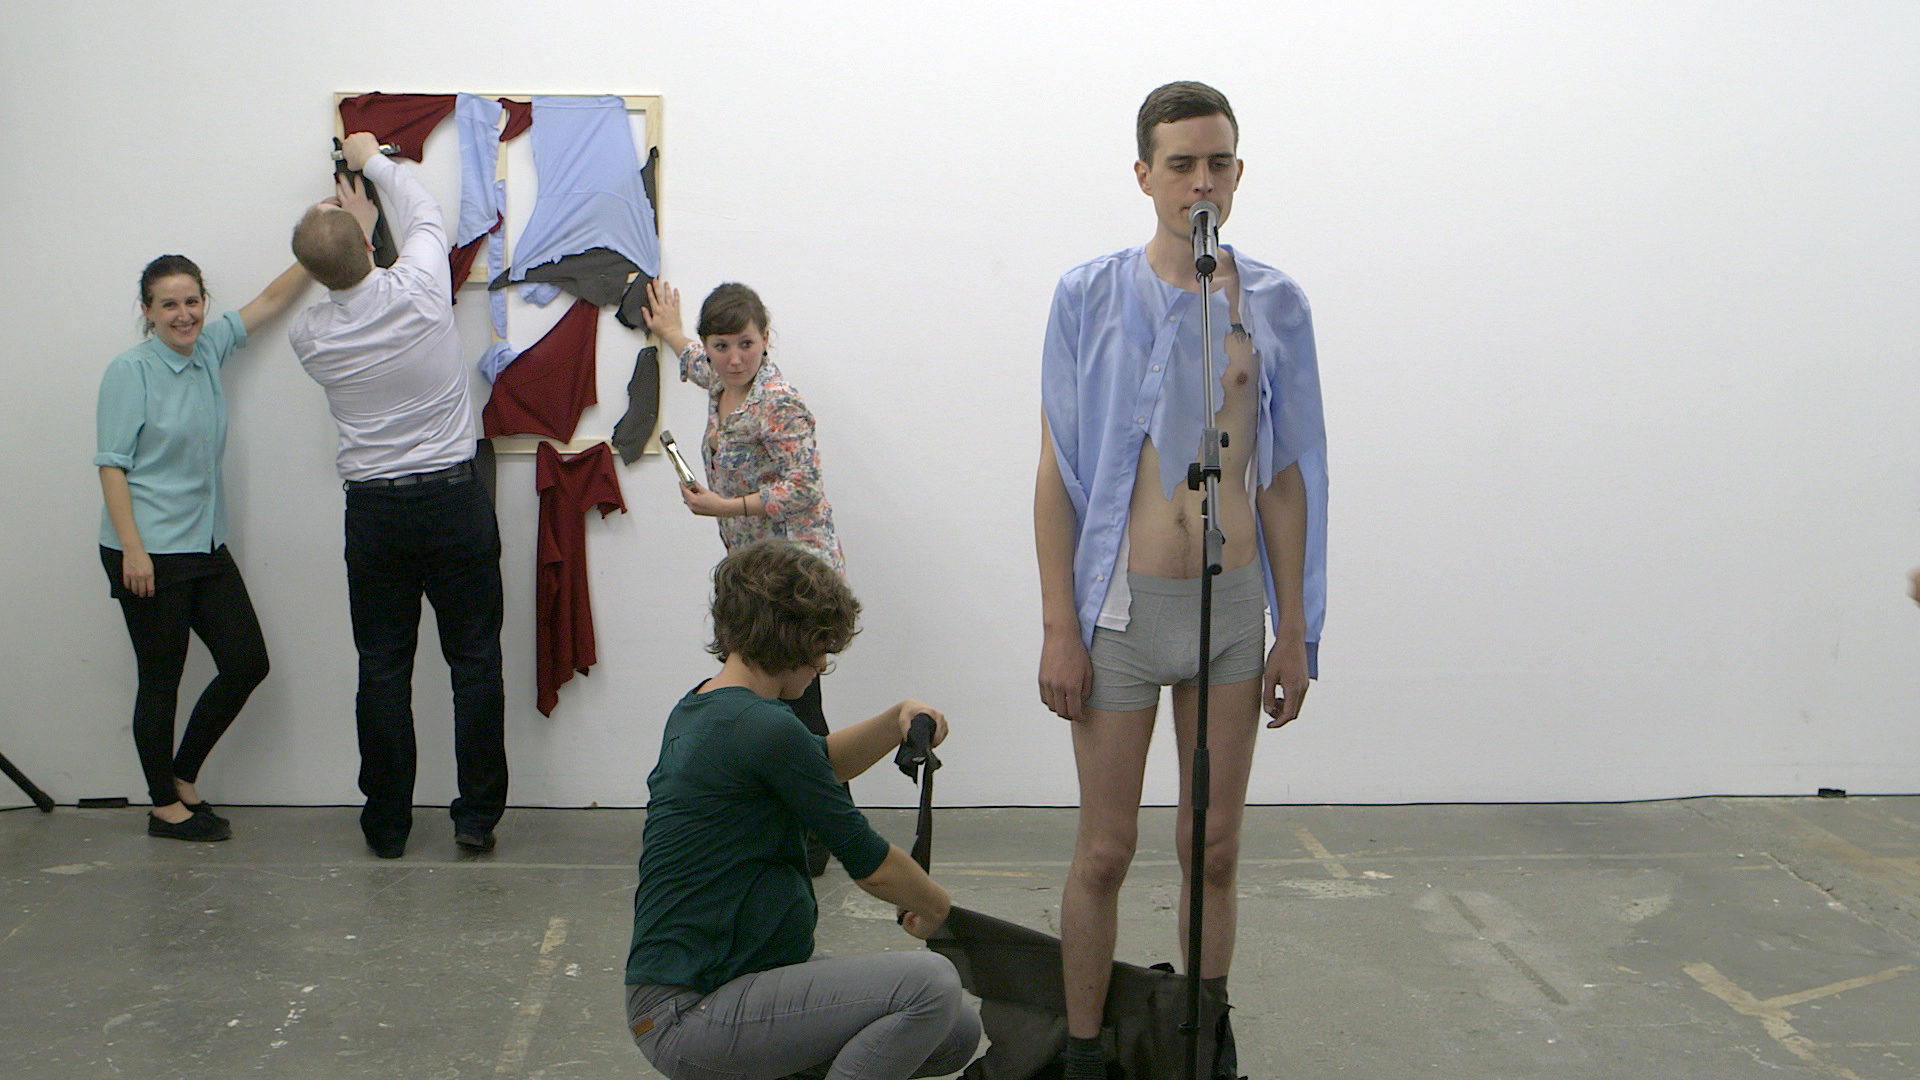 Christian Falsnaes, Opening, KW Institute of Contemporary Art, Berlin 2013